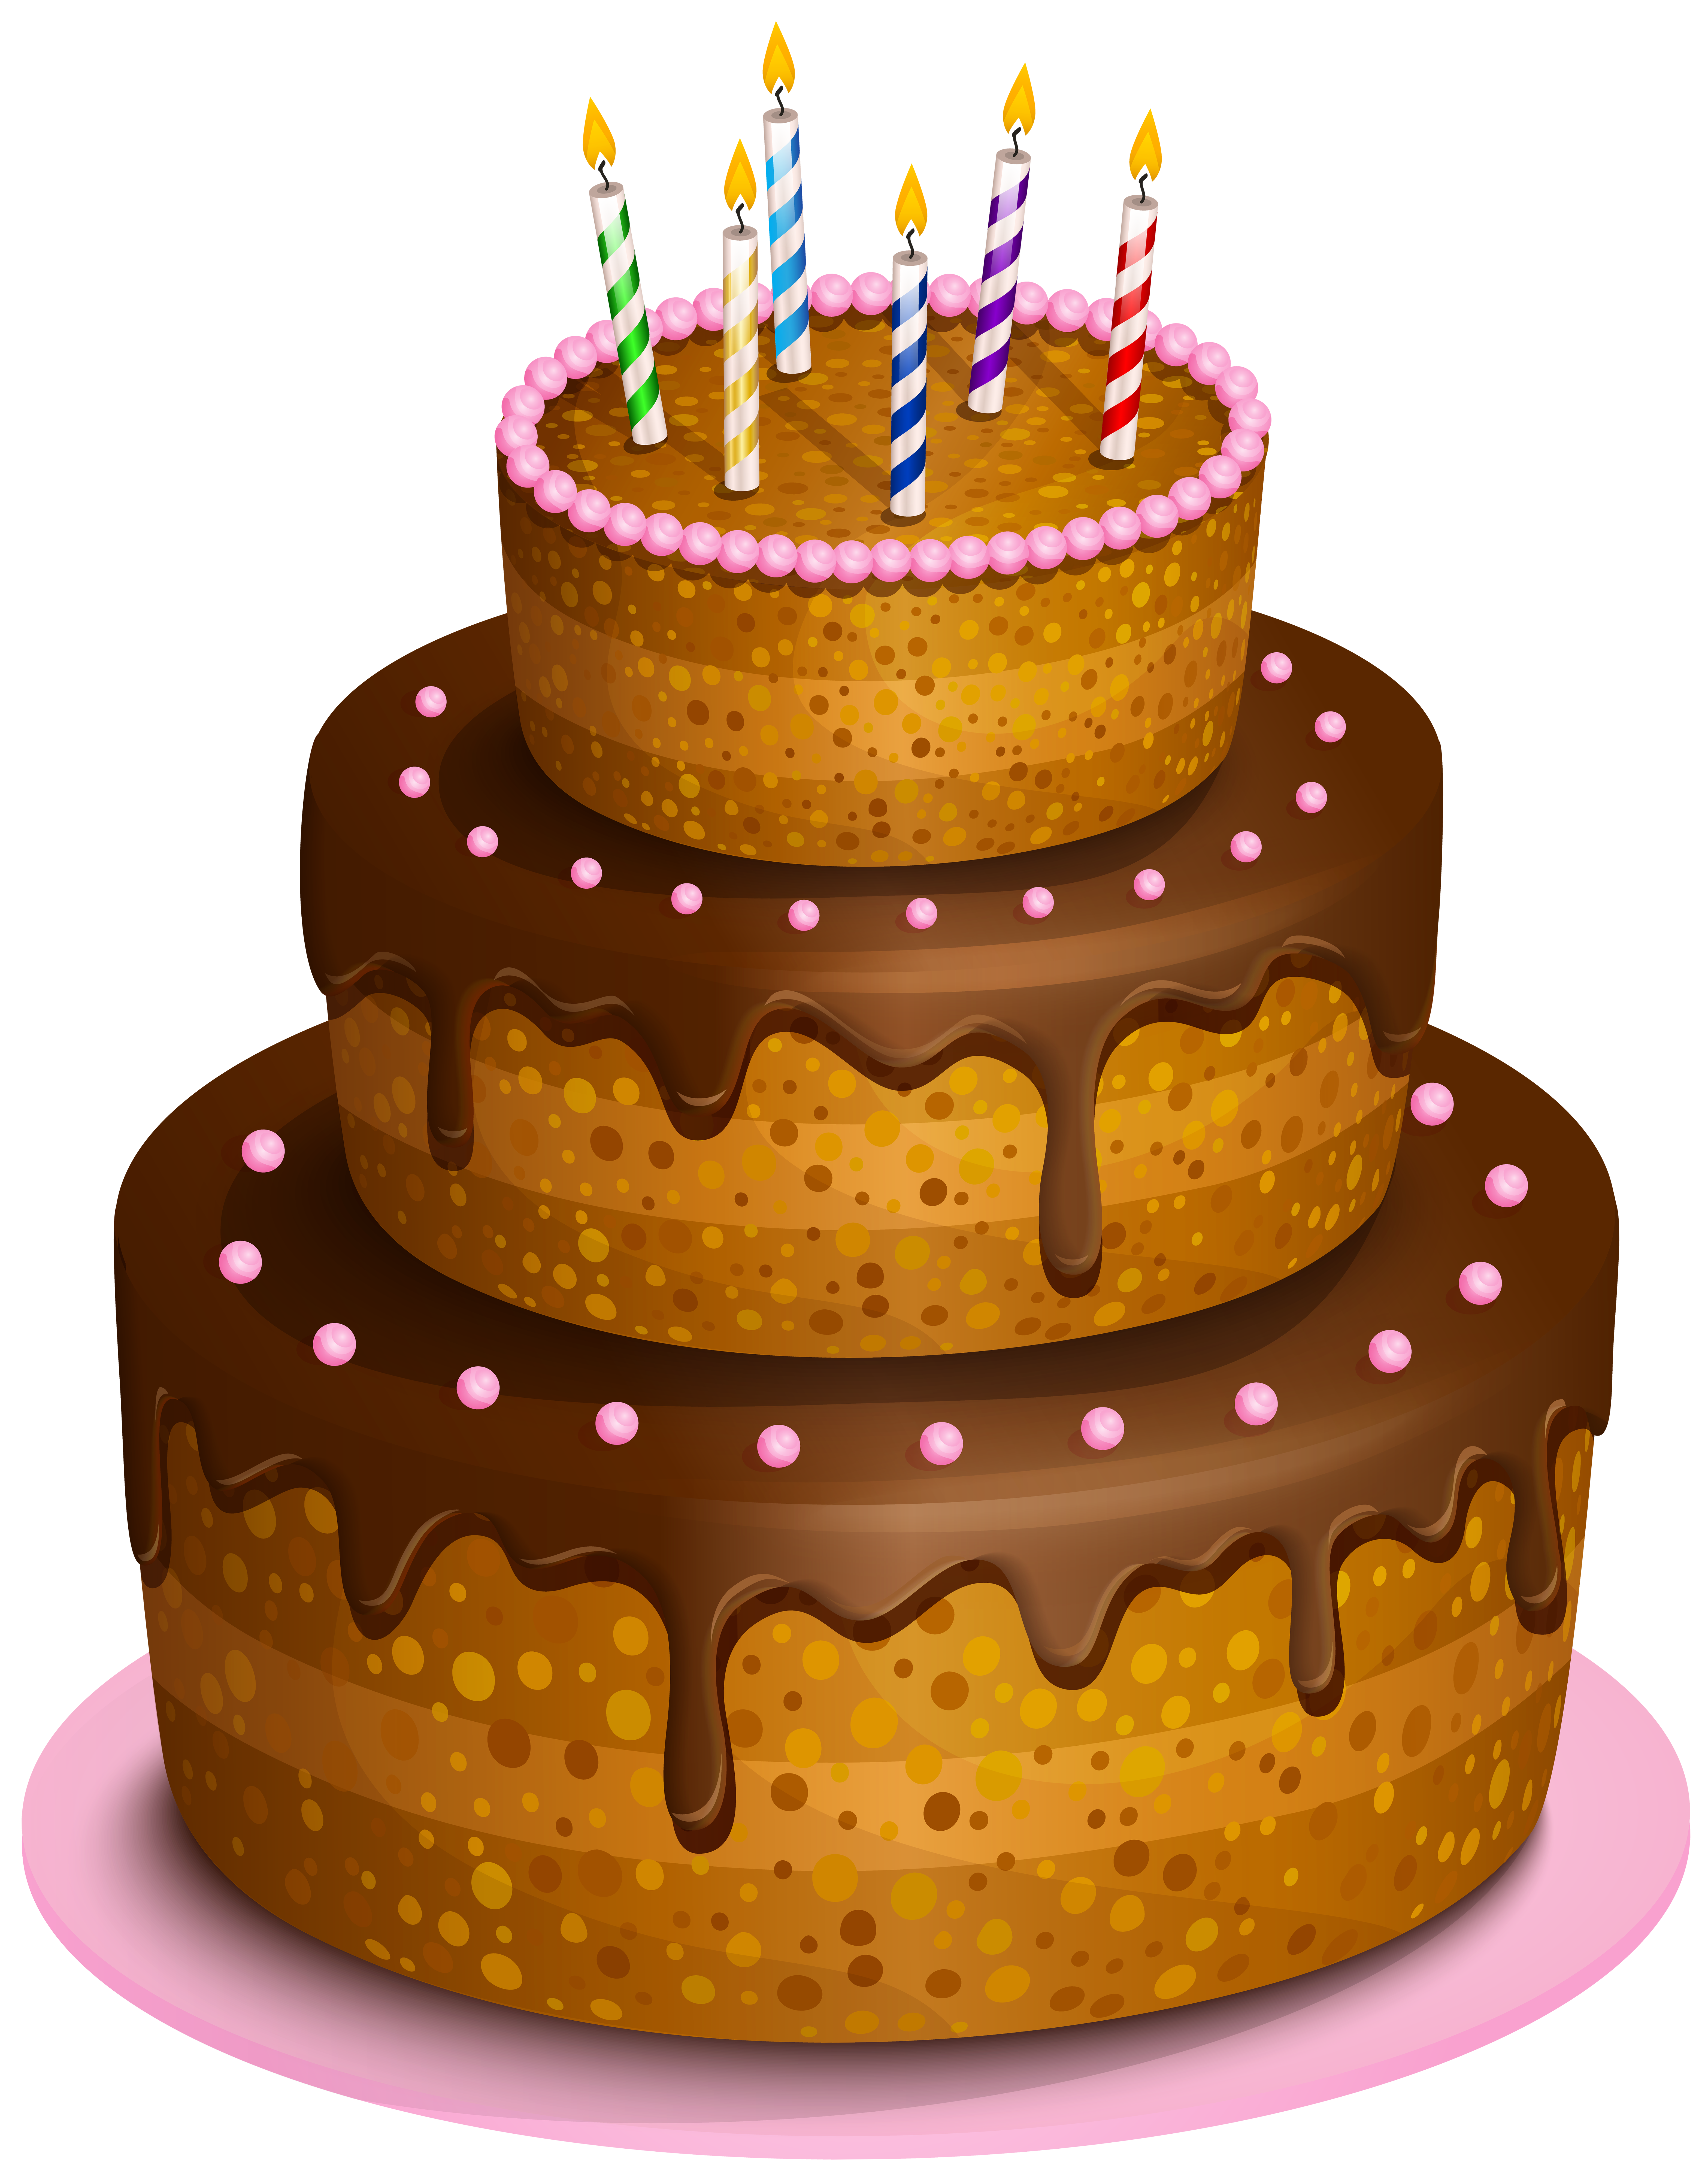 Birthday cake free clipart picture royalty free stock Birthday Cake Transparent PNG Clip Art Image picture royalty free stock